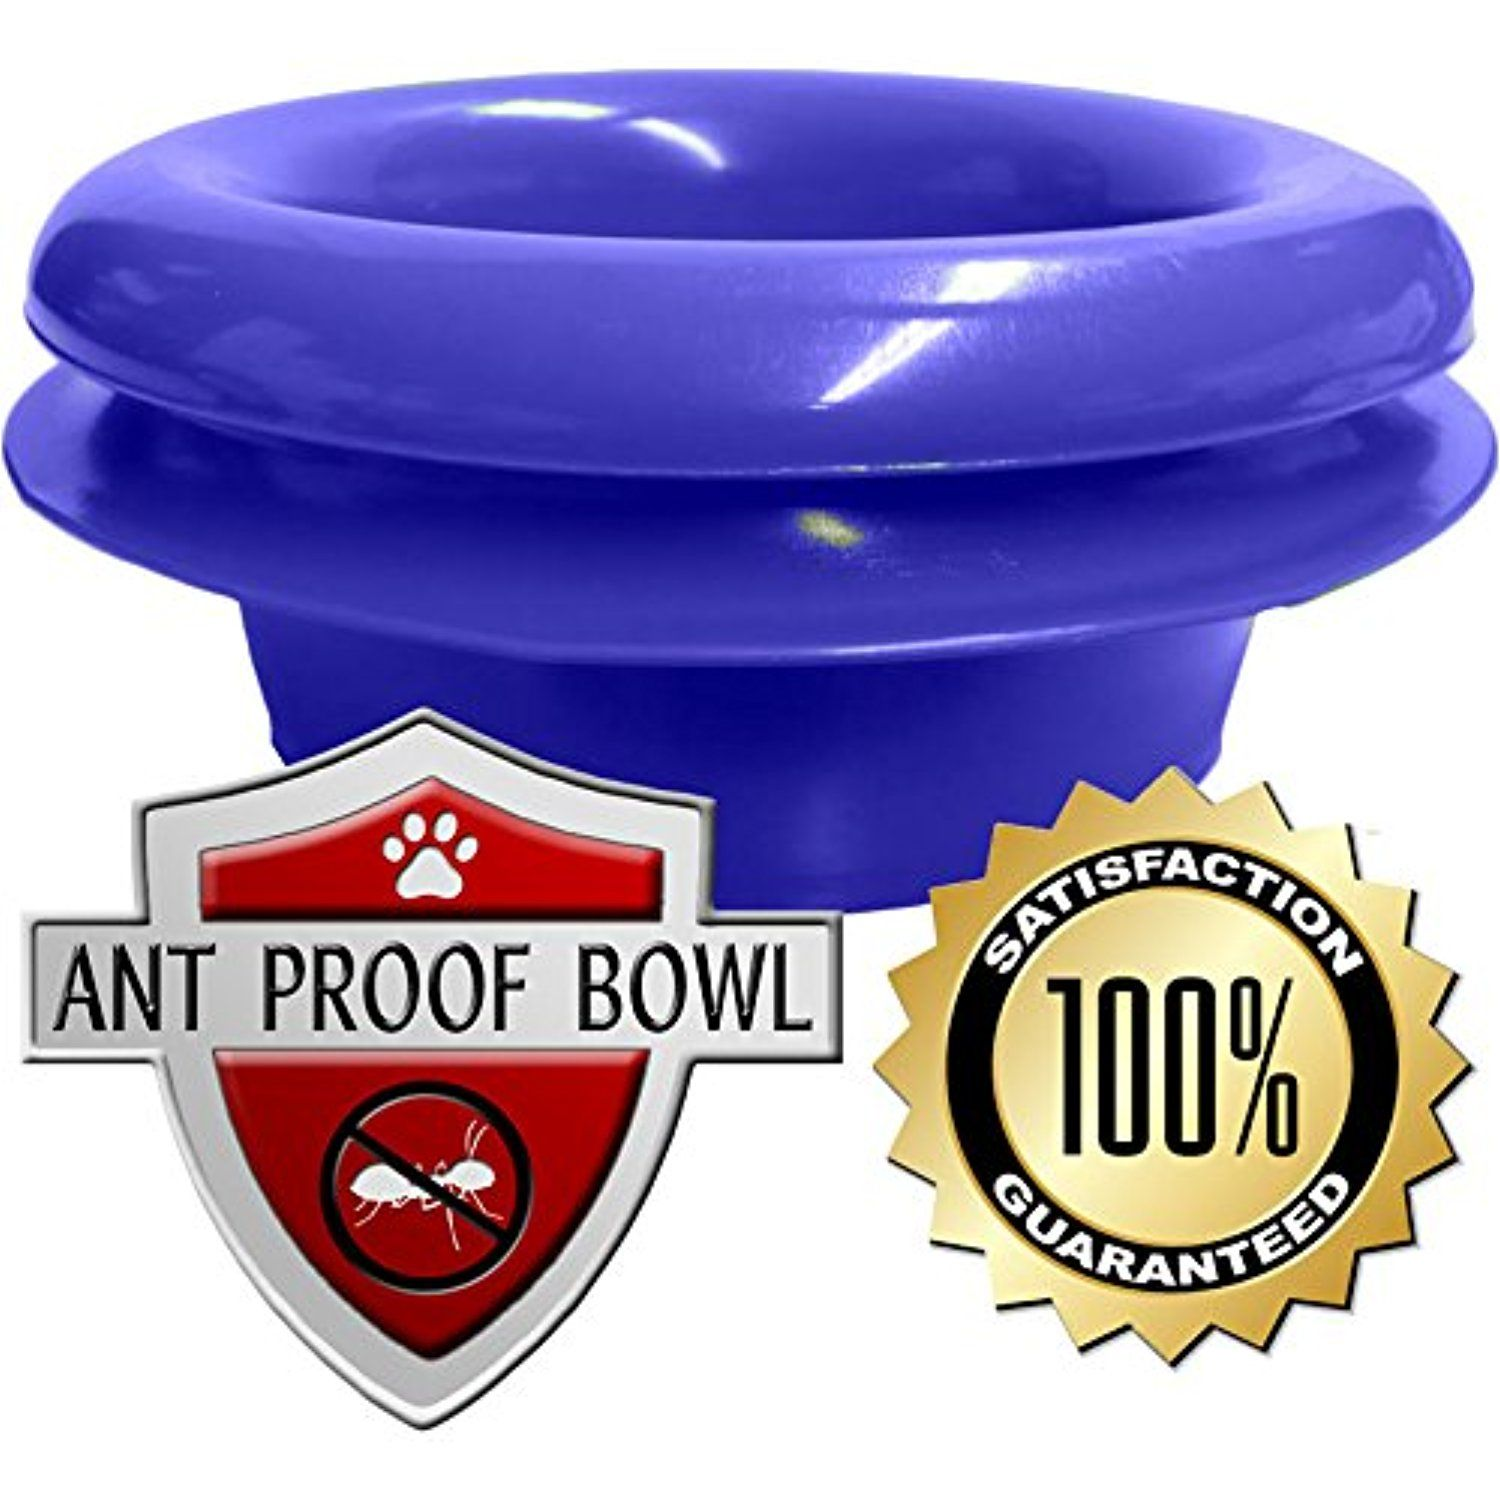 2Bowl Raised Multicat Feeder with Antproof Base from